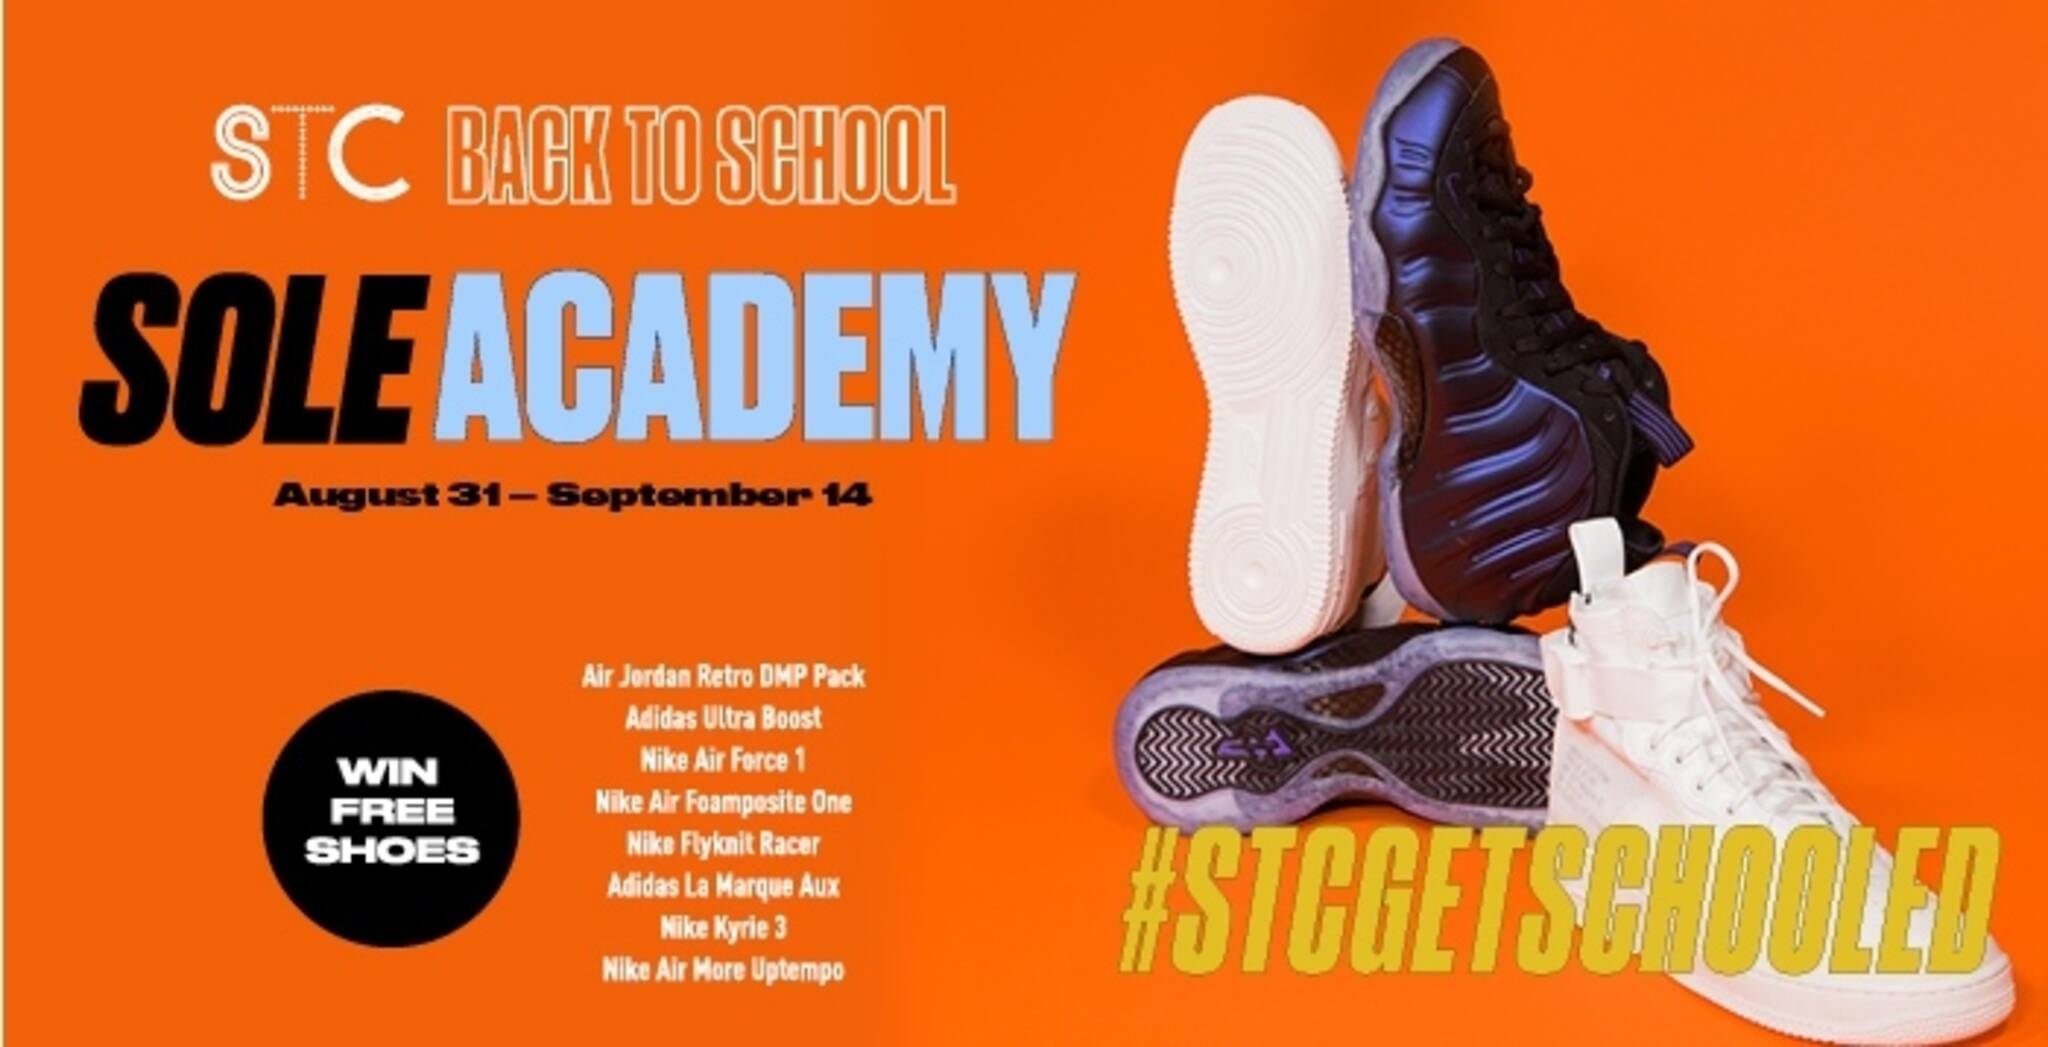 fcf7ebdf7290 Back-To-School   Sole Academy